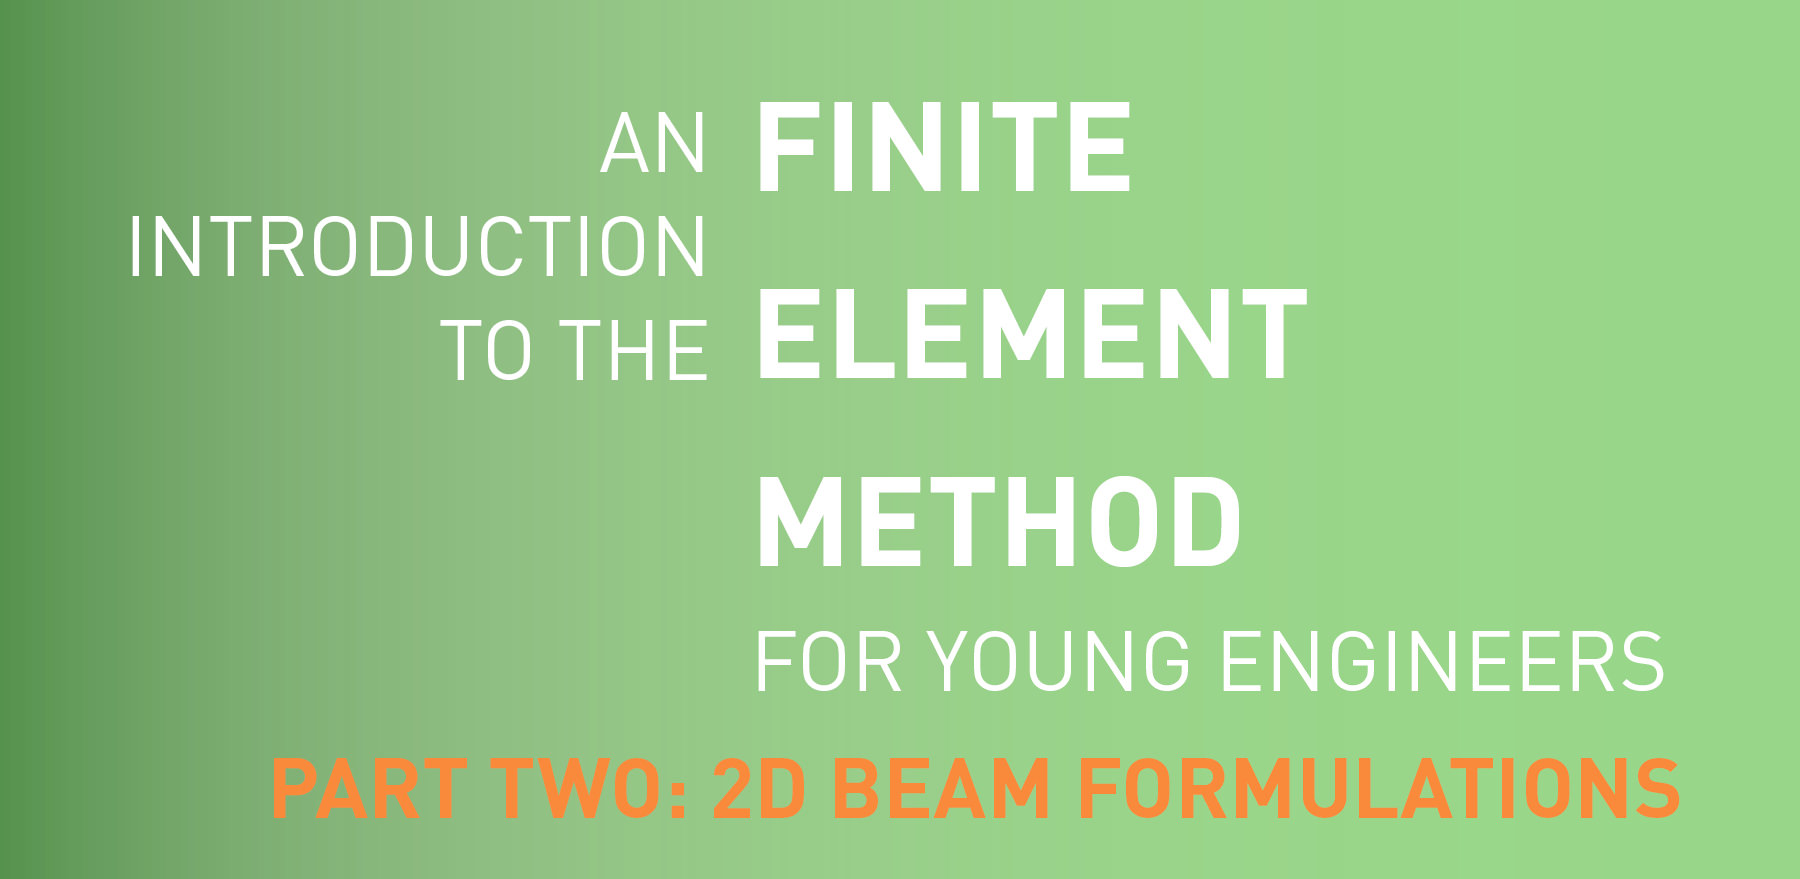 An Introduction to the Finite Element Method for Young Engineers – Part 2: 2D Beam Formulations